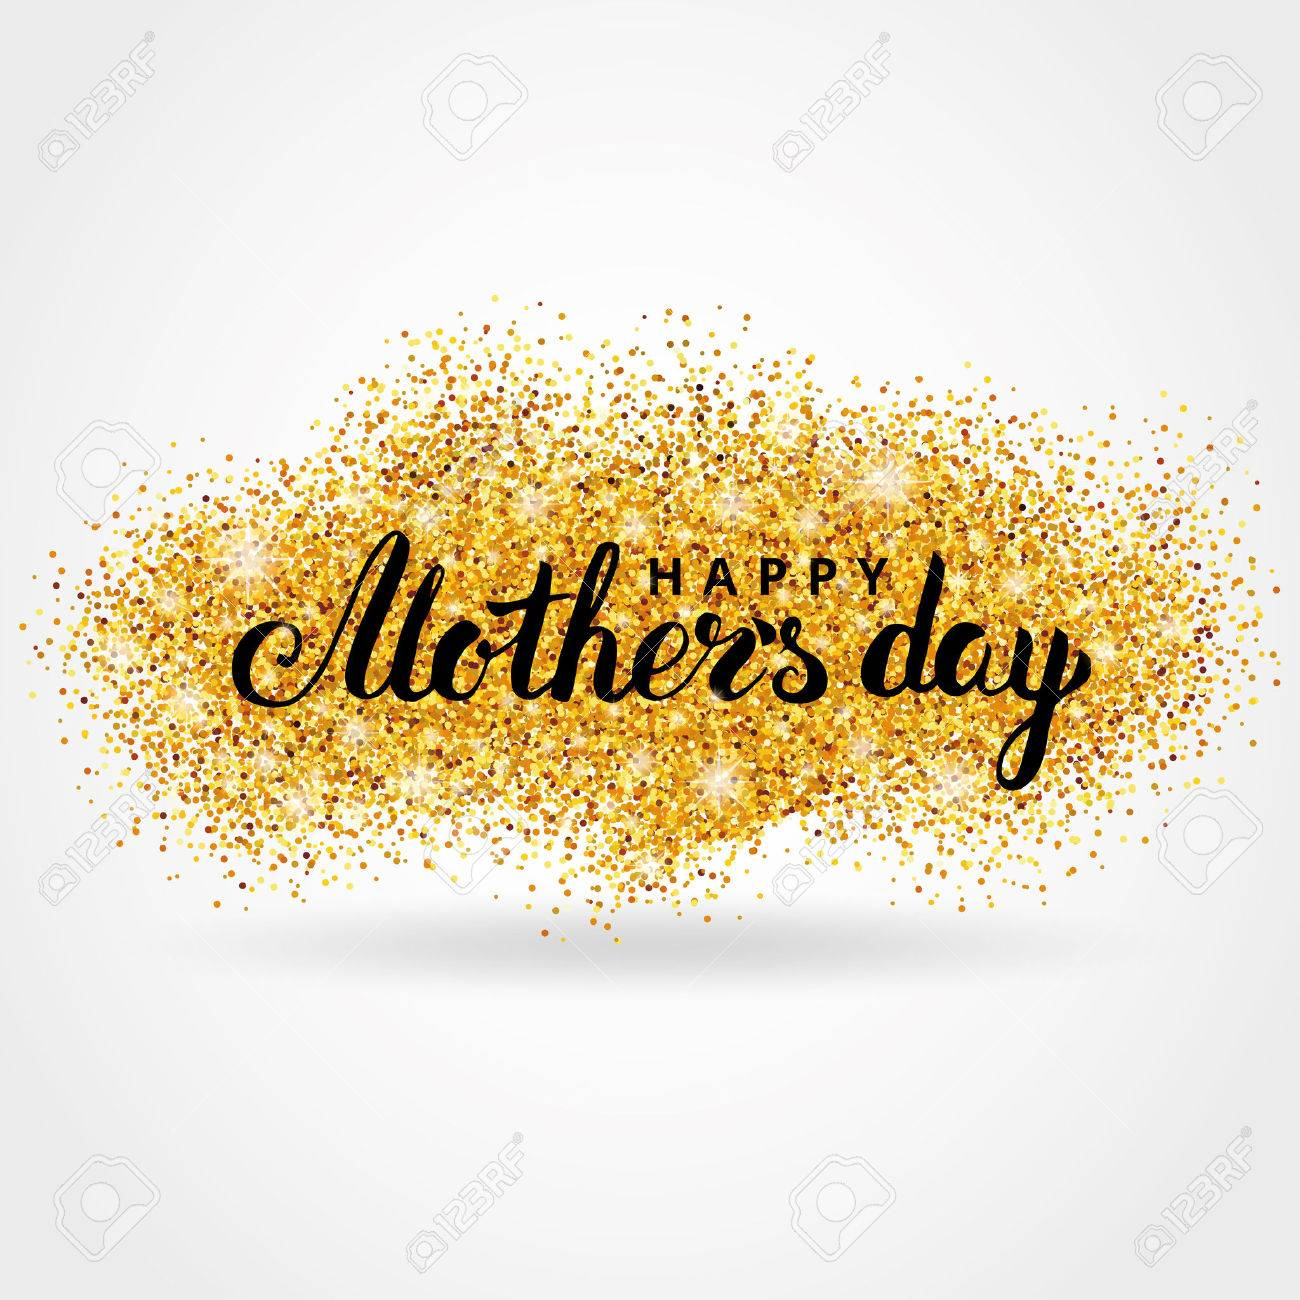 Mothers day. Gold glitter background - 55366748